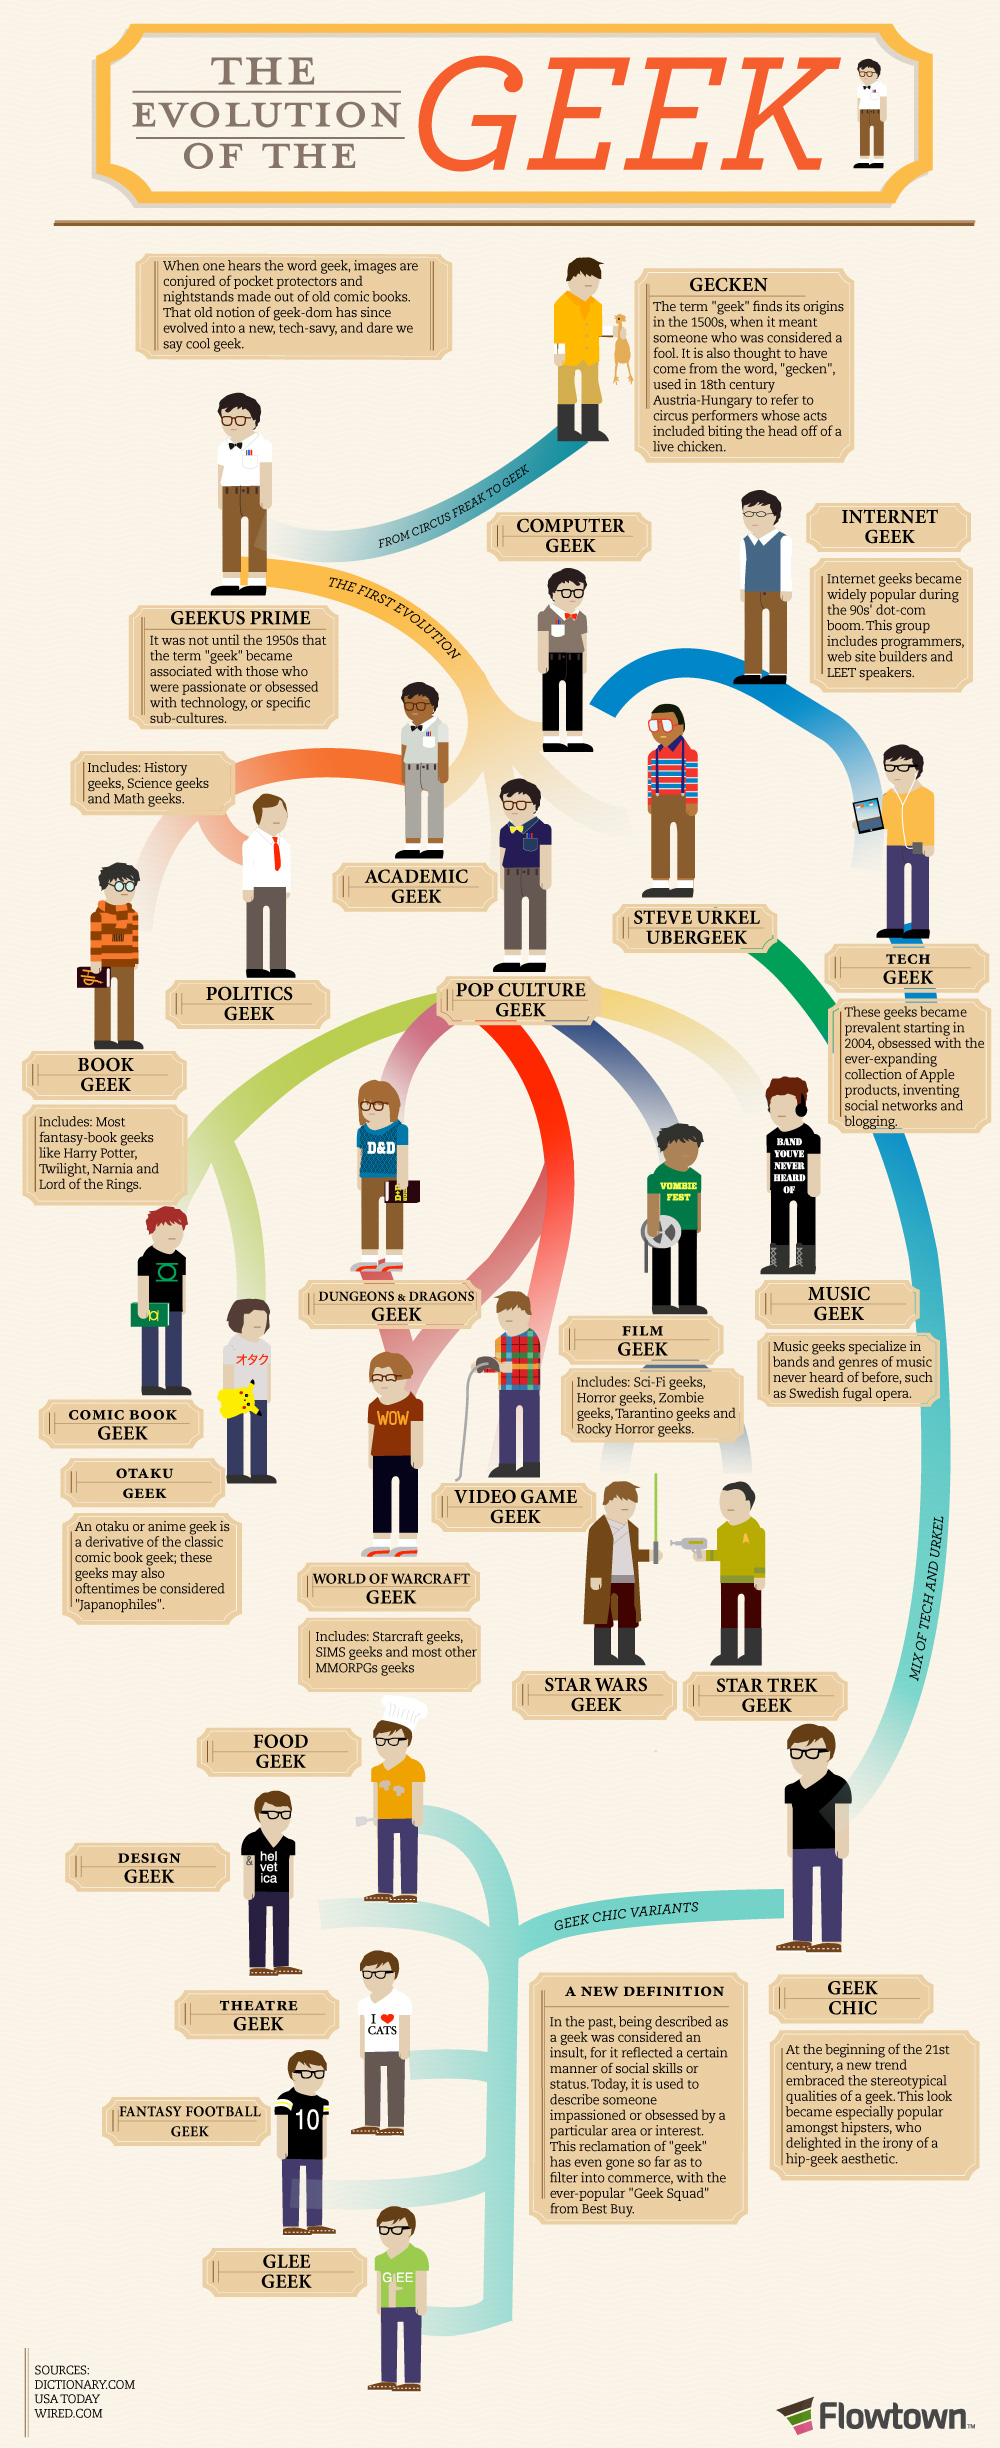 The Evolution of a geek. A flowchart